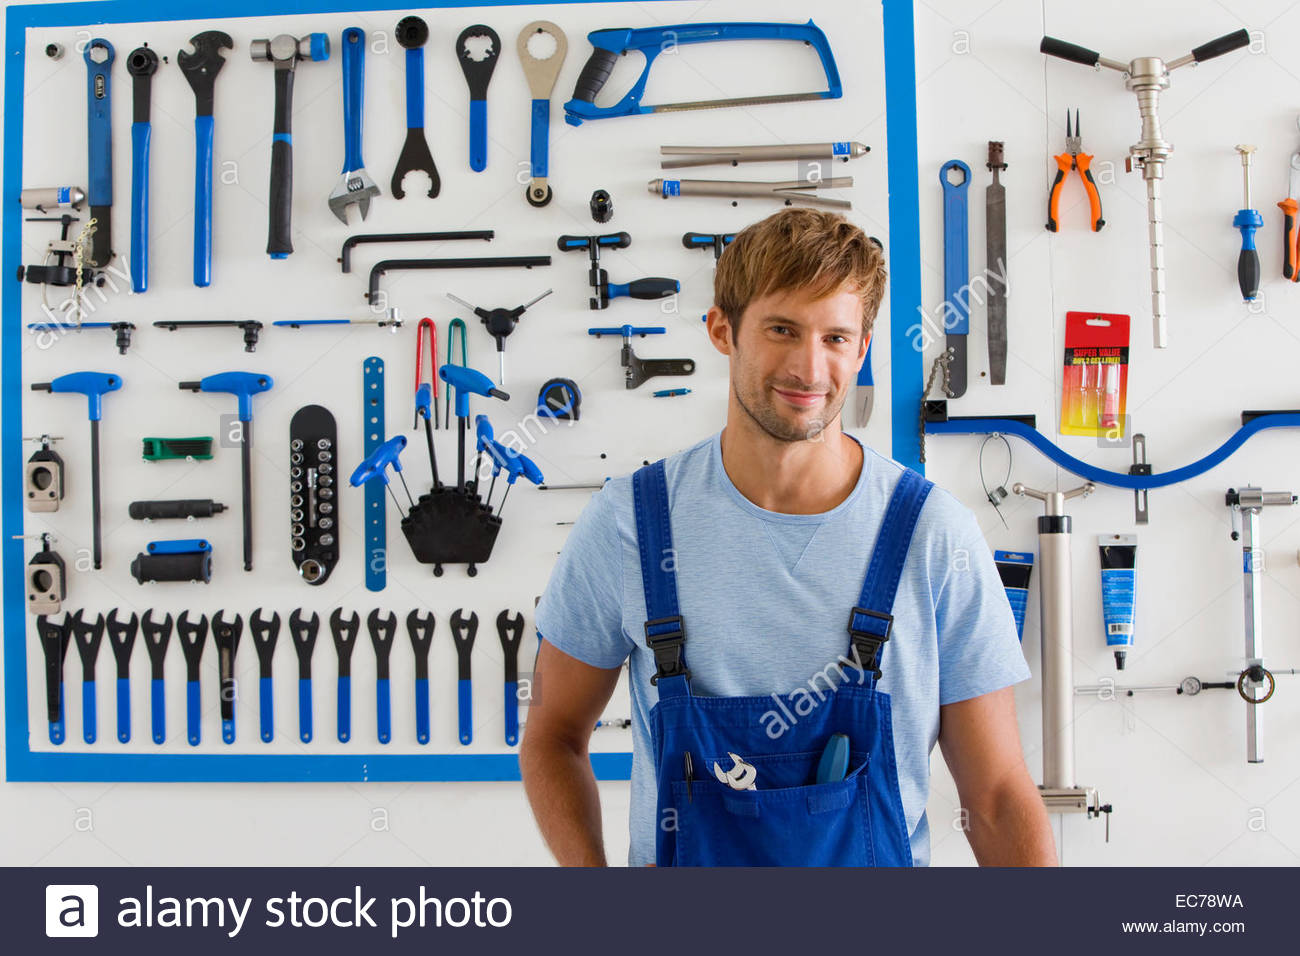 Cycle technician in workshop looking at camera - Stock Image